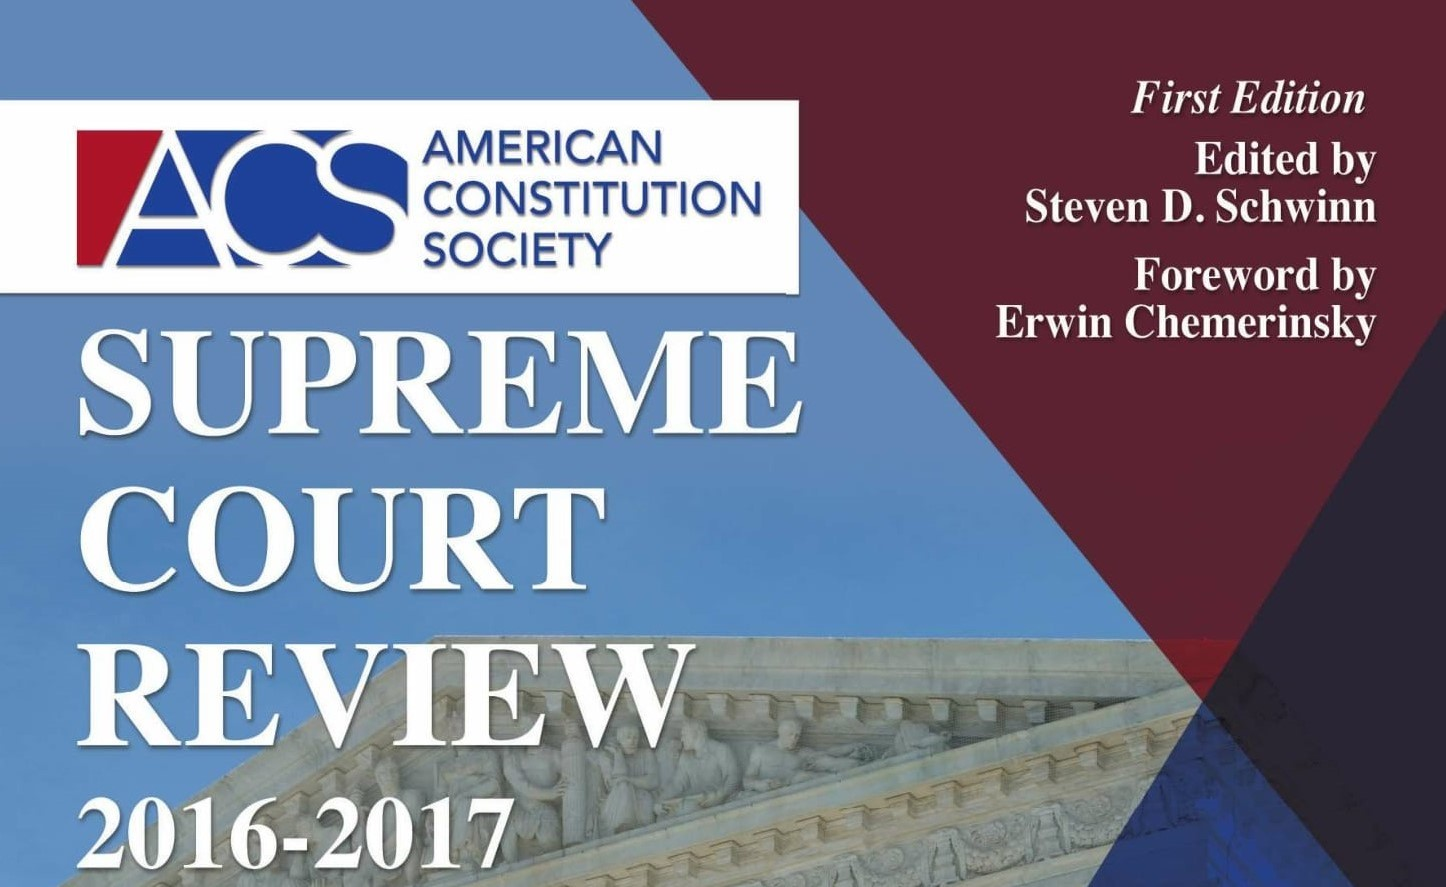 Cropped cover page for ACS Supreme Court Review